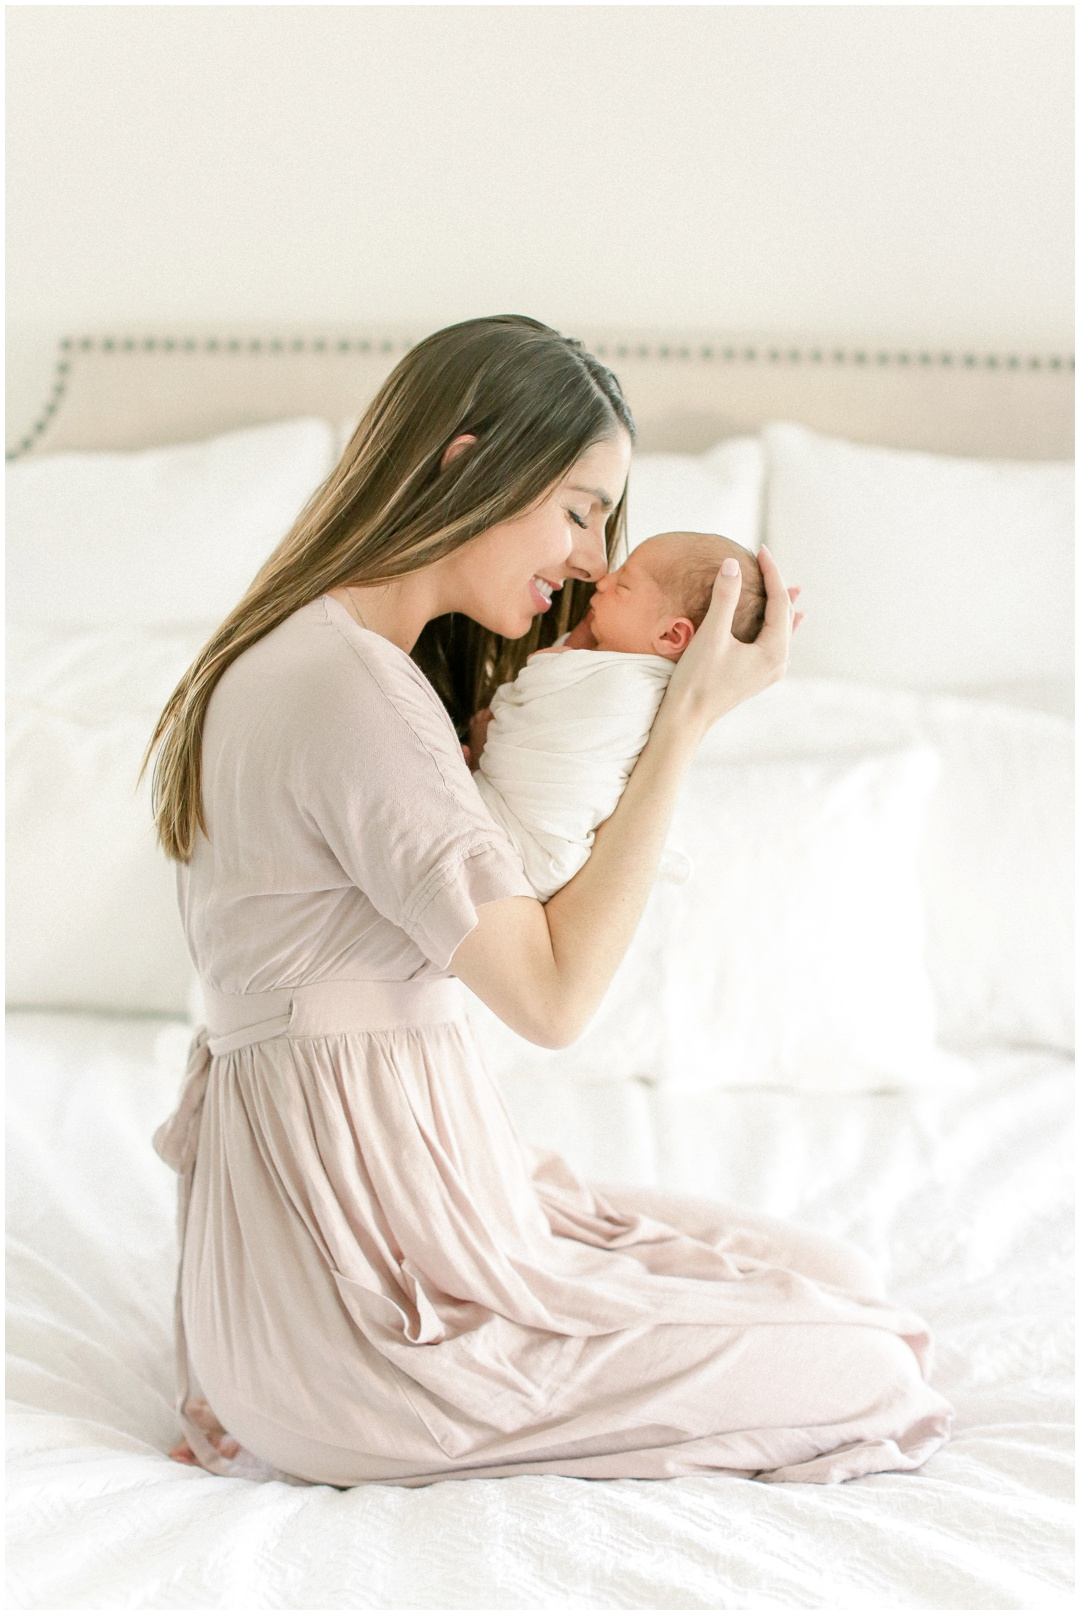 Orange_County_Newborn_Photographer_Newport_Beach_Family_Photographer_Newport_Beach_Newborn_Photographer_Orange_County_Family_Photographer_Cori_Kleckner_Photography_Huntington_Beach_Photographer_Dicey_Perrine_Brett_Perrine_2541.jpg